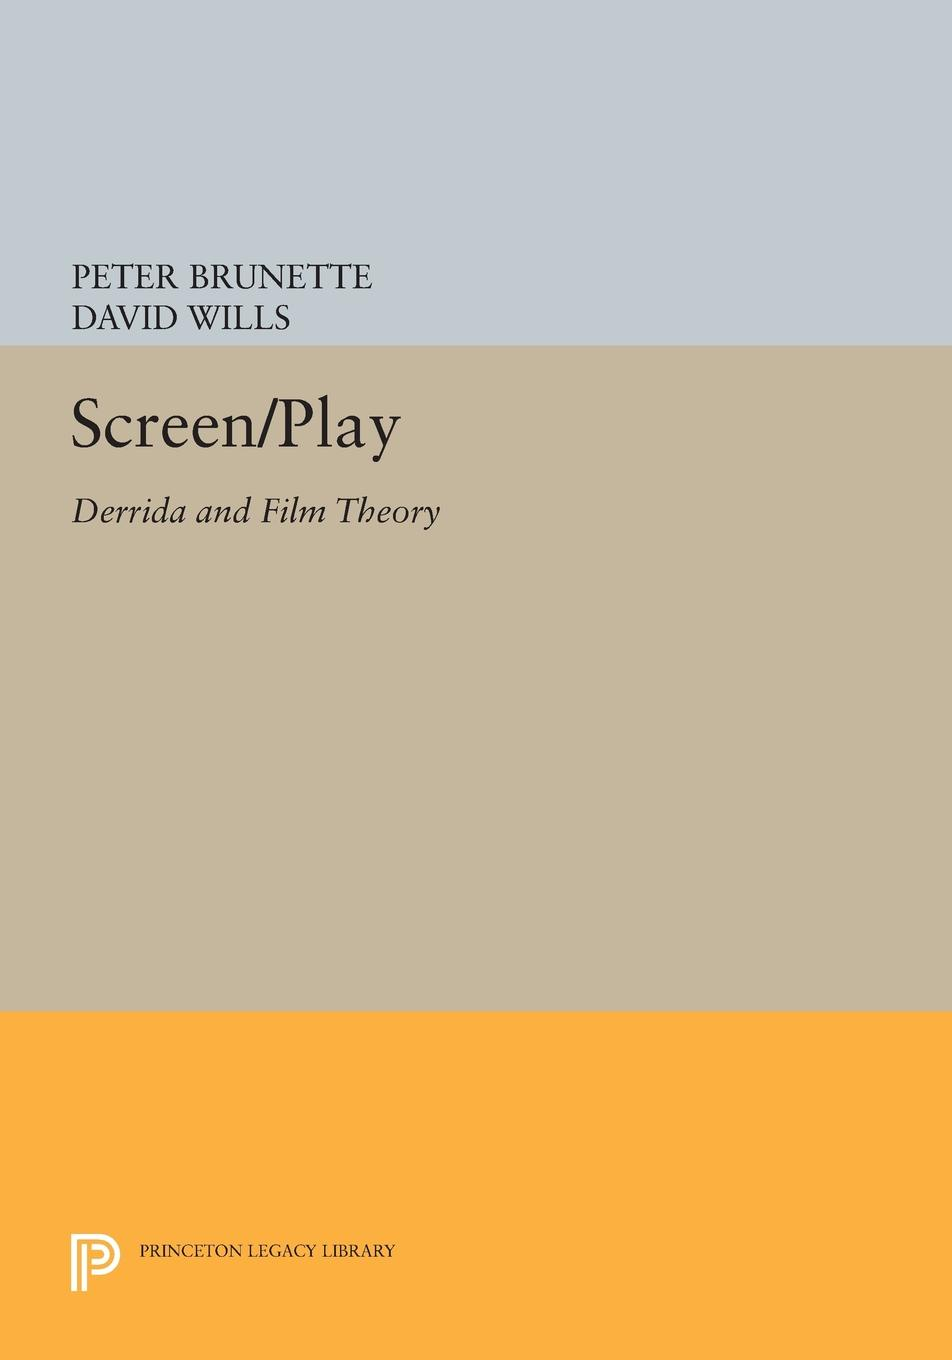 Screen/Play. Derrida and Film Theory